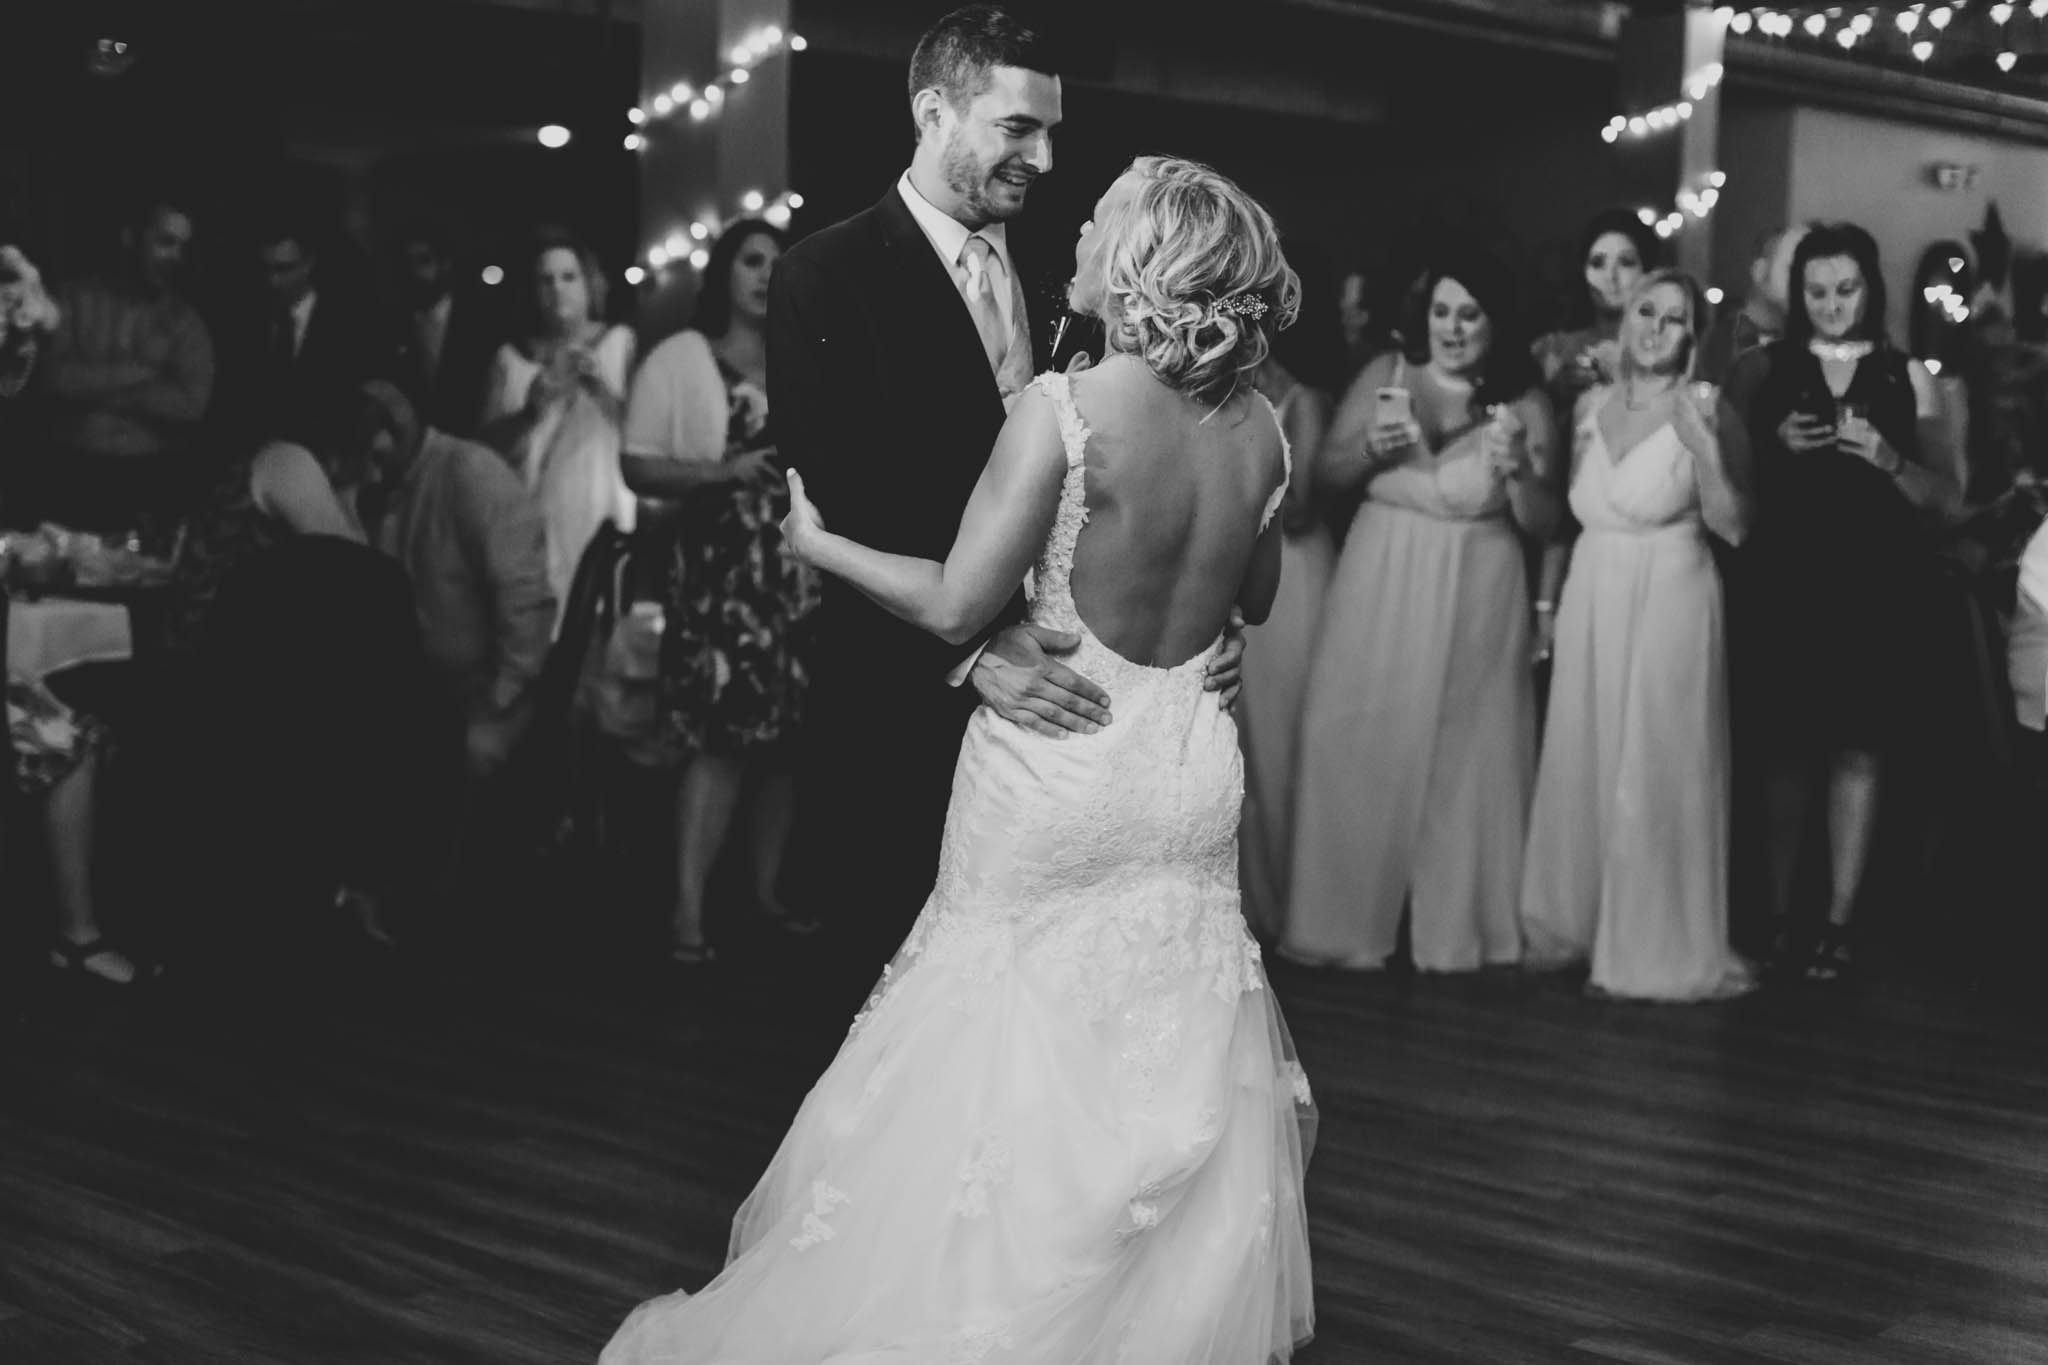 Jillian VanZytveld Photography - Grand Rapids Lifestyle Wedding Photography - 194.jpg